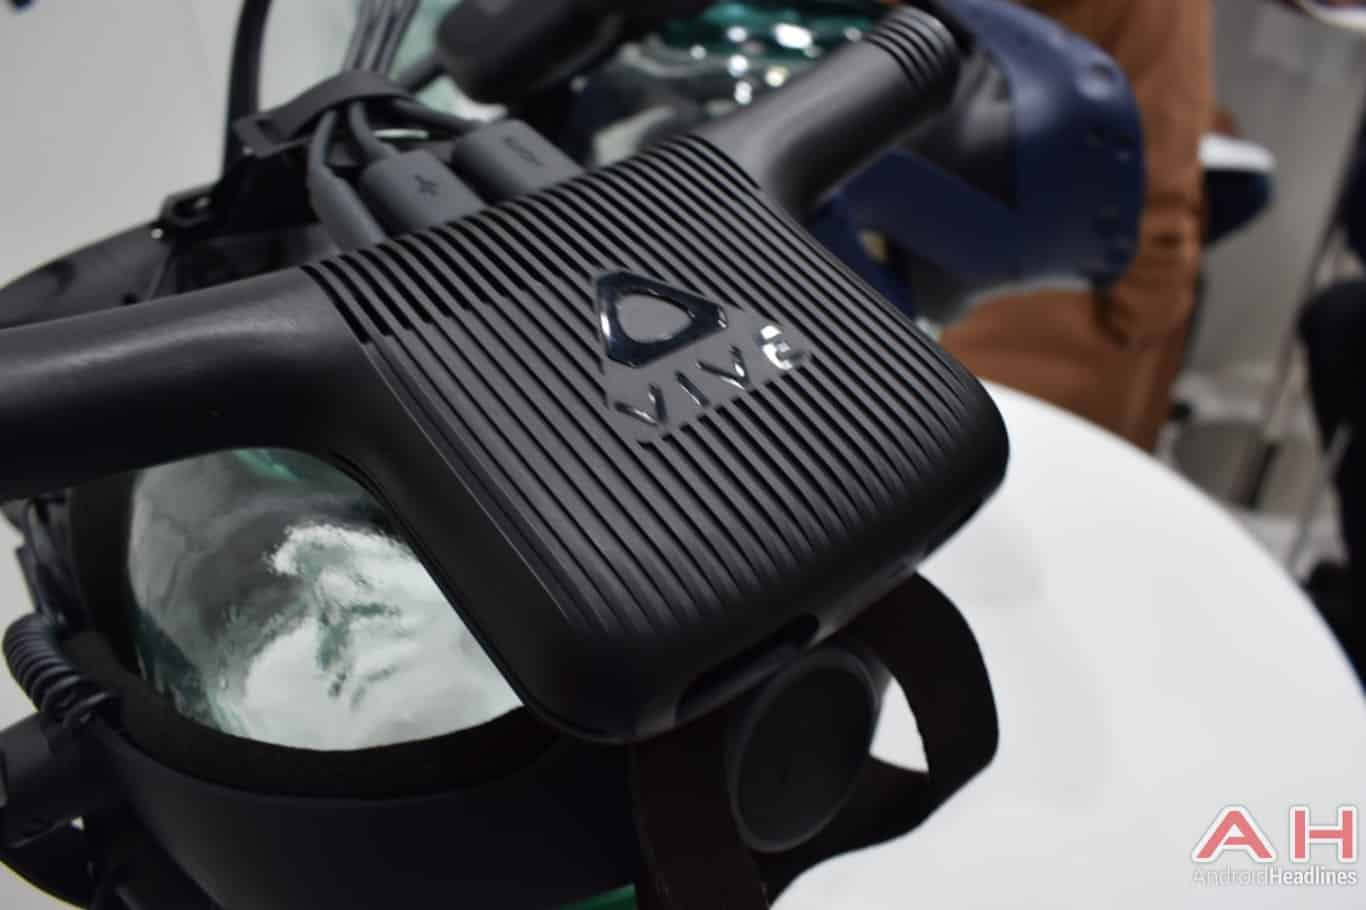 AH HTC Vive Wireless Adapter MWC 2018 hands on 4